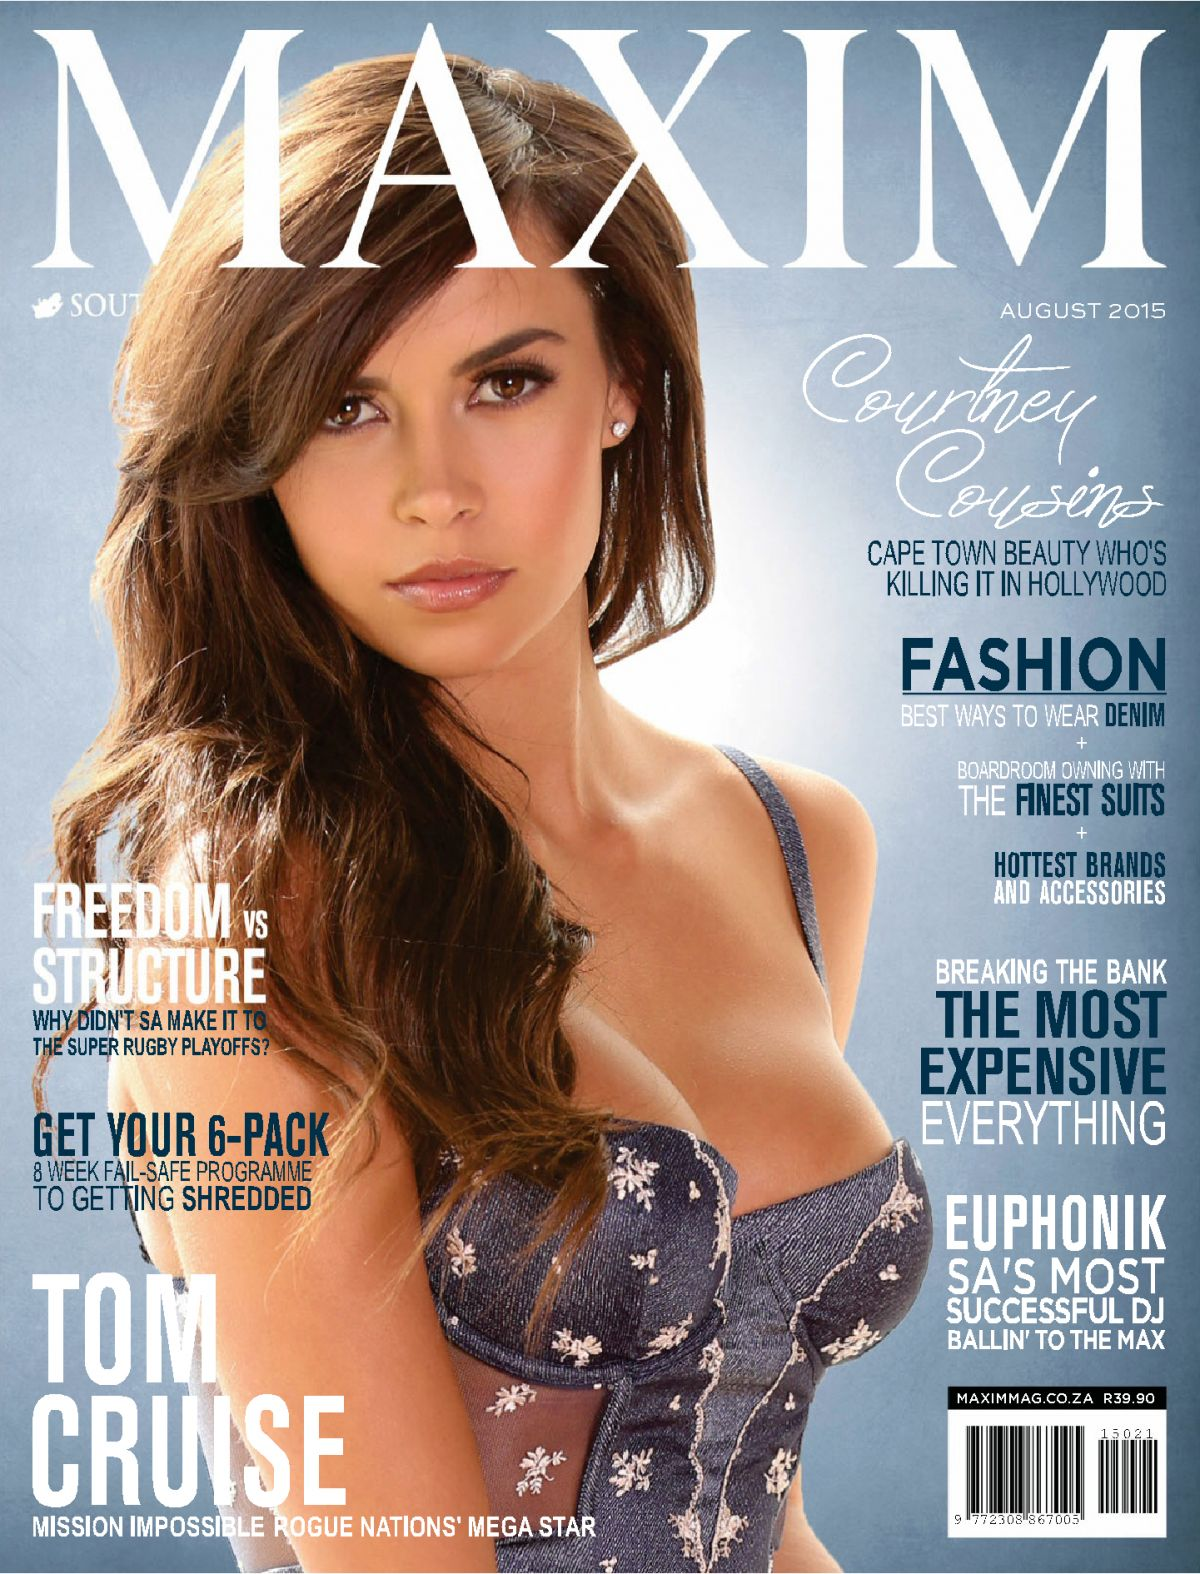 COURTNEY COUSINS in Maxim Magazine, South Africa August 2015 Issue